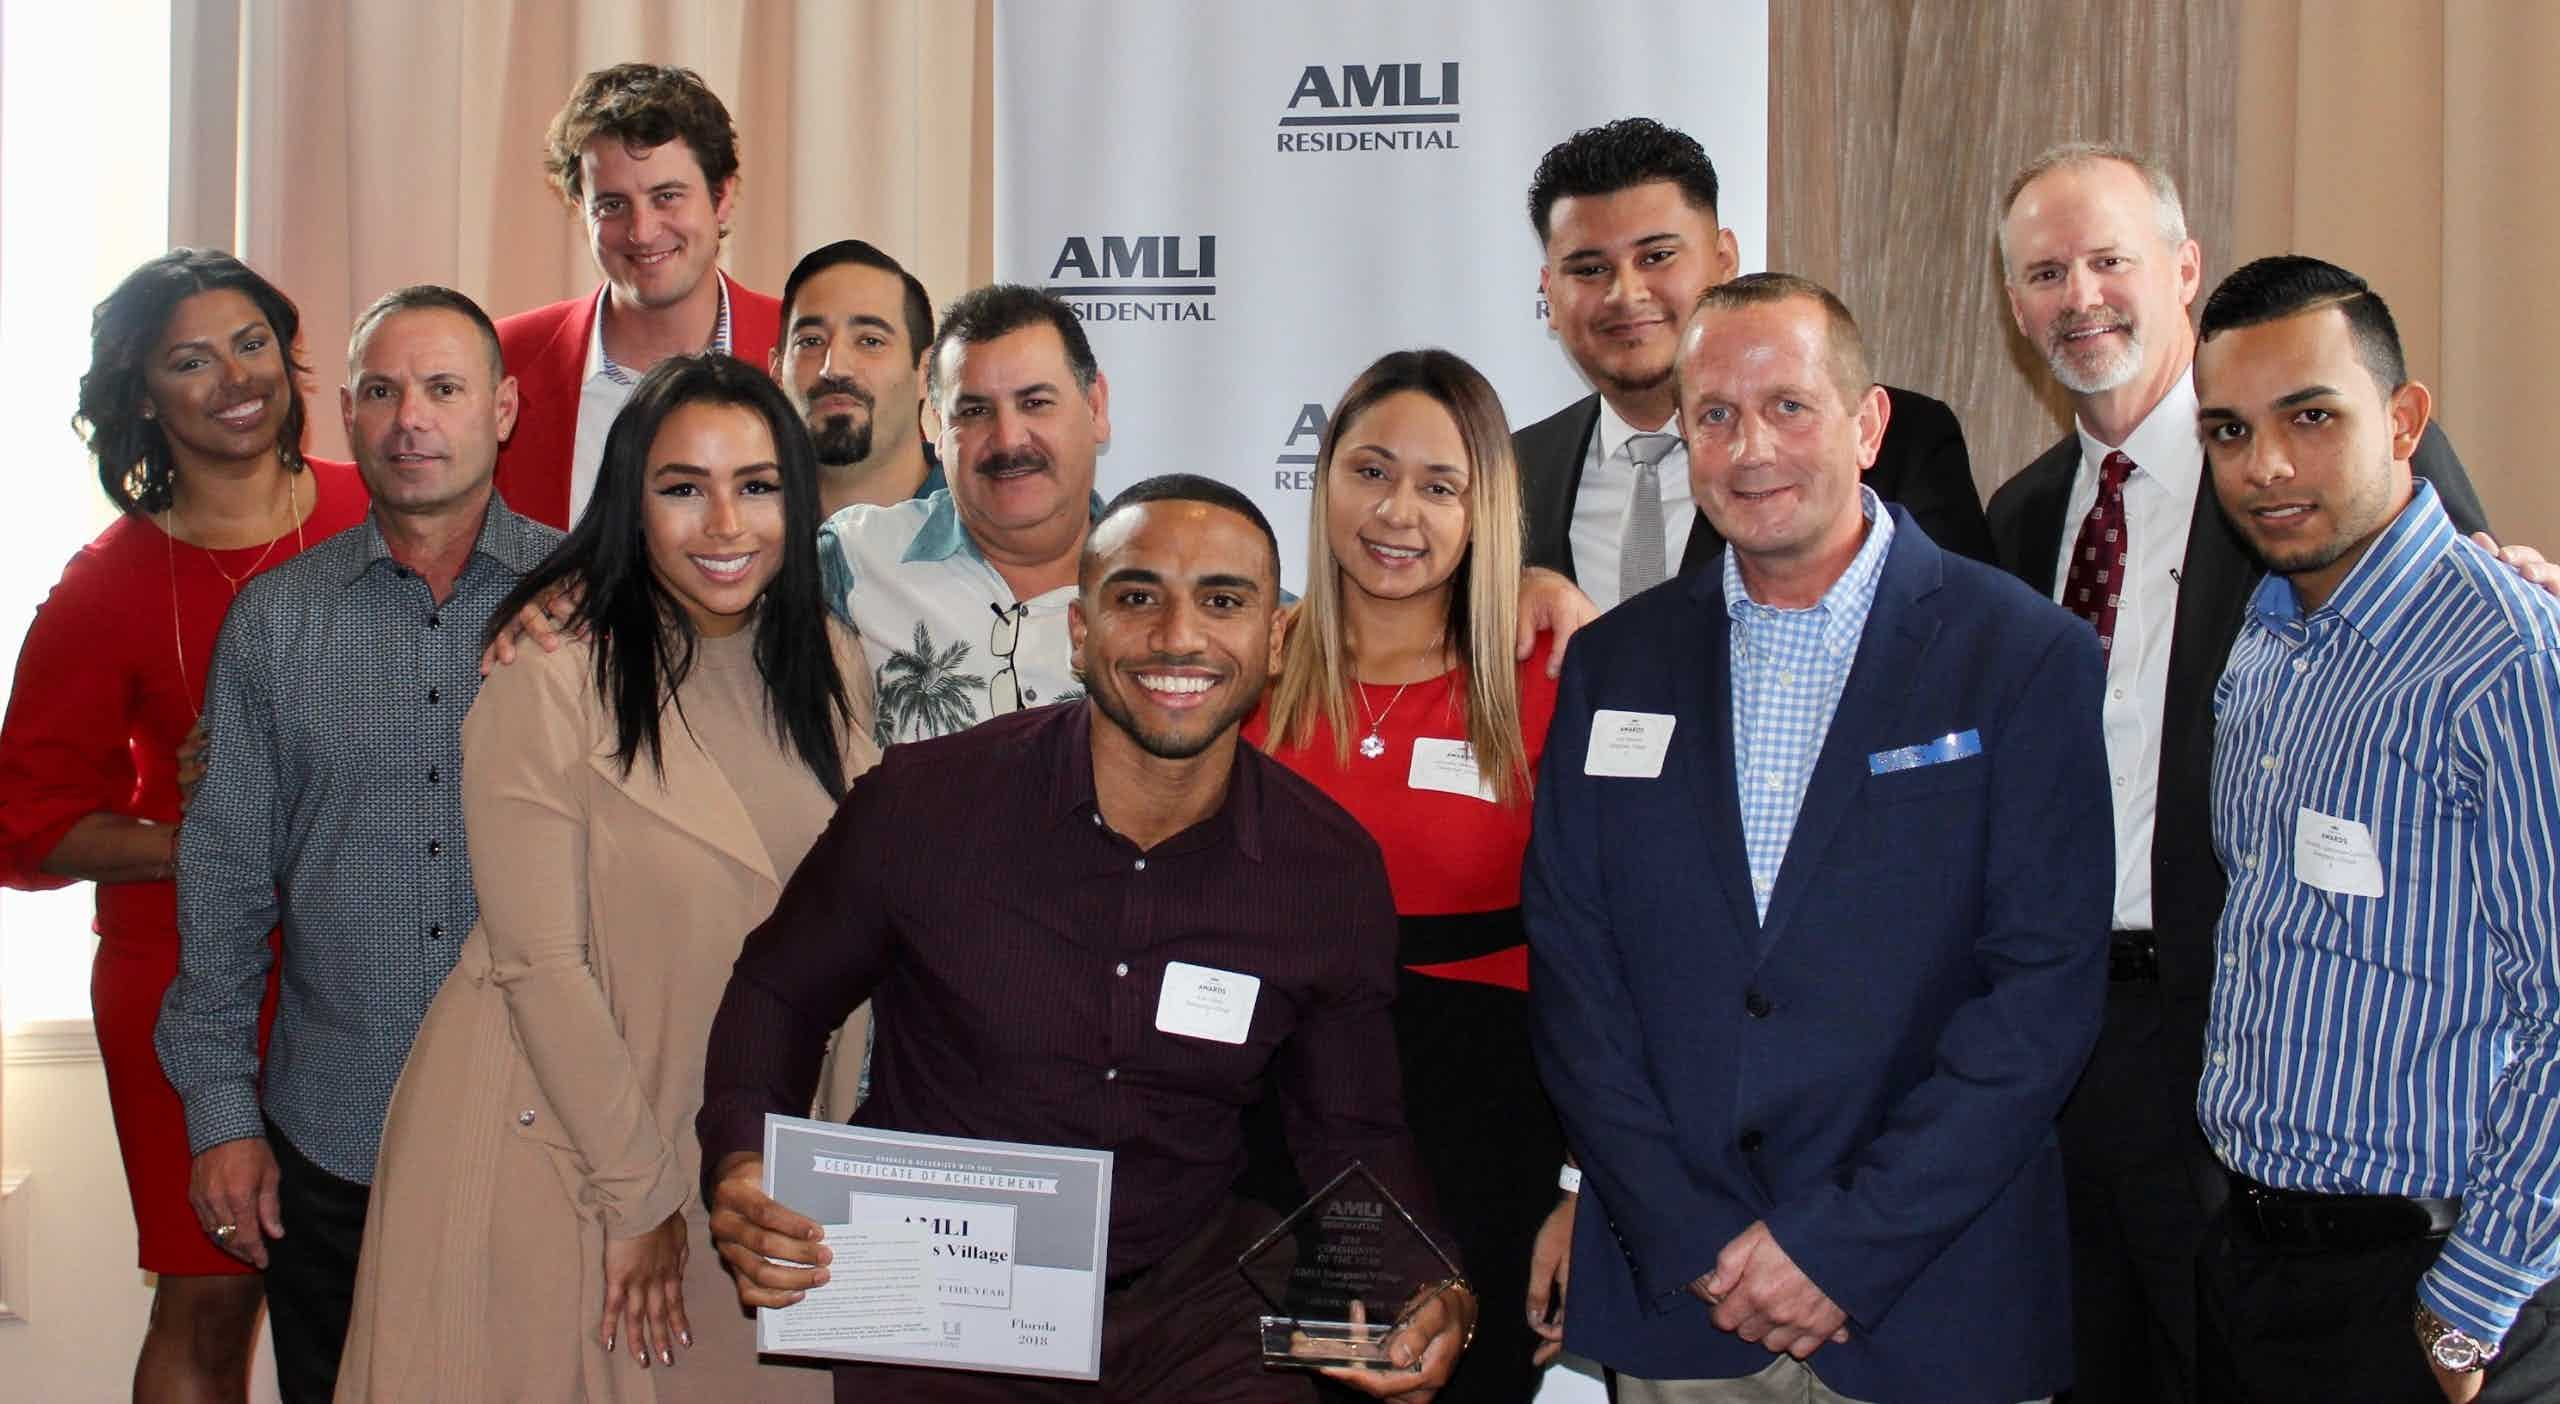 AMLI at the Ballpark team receiving annual award